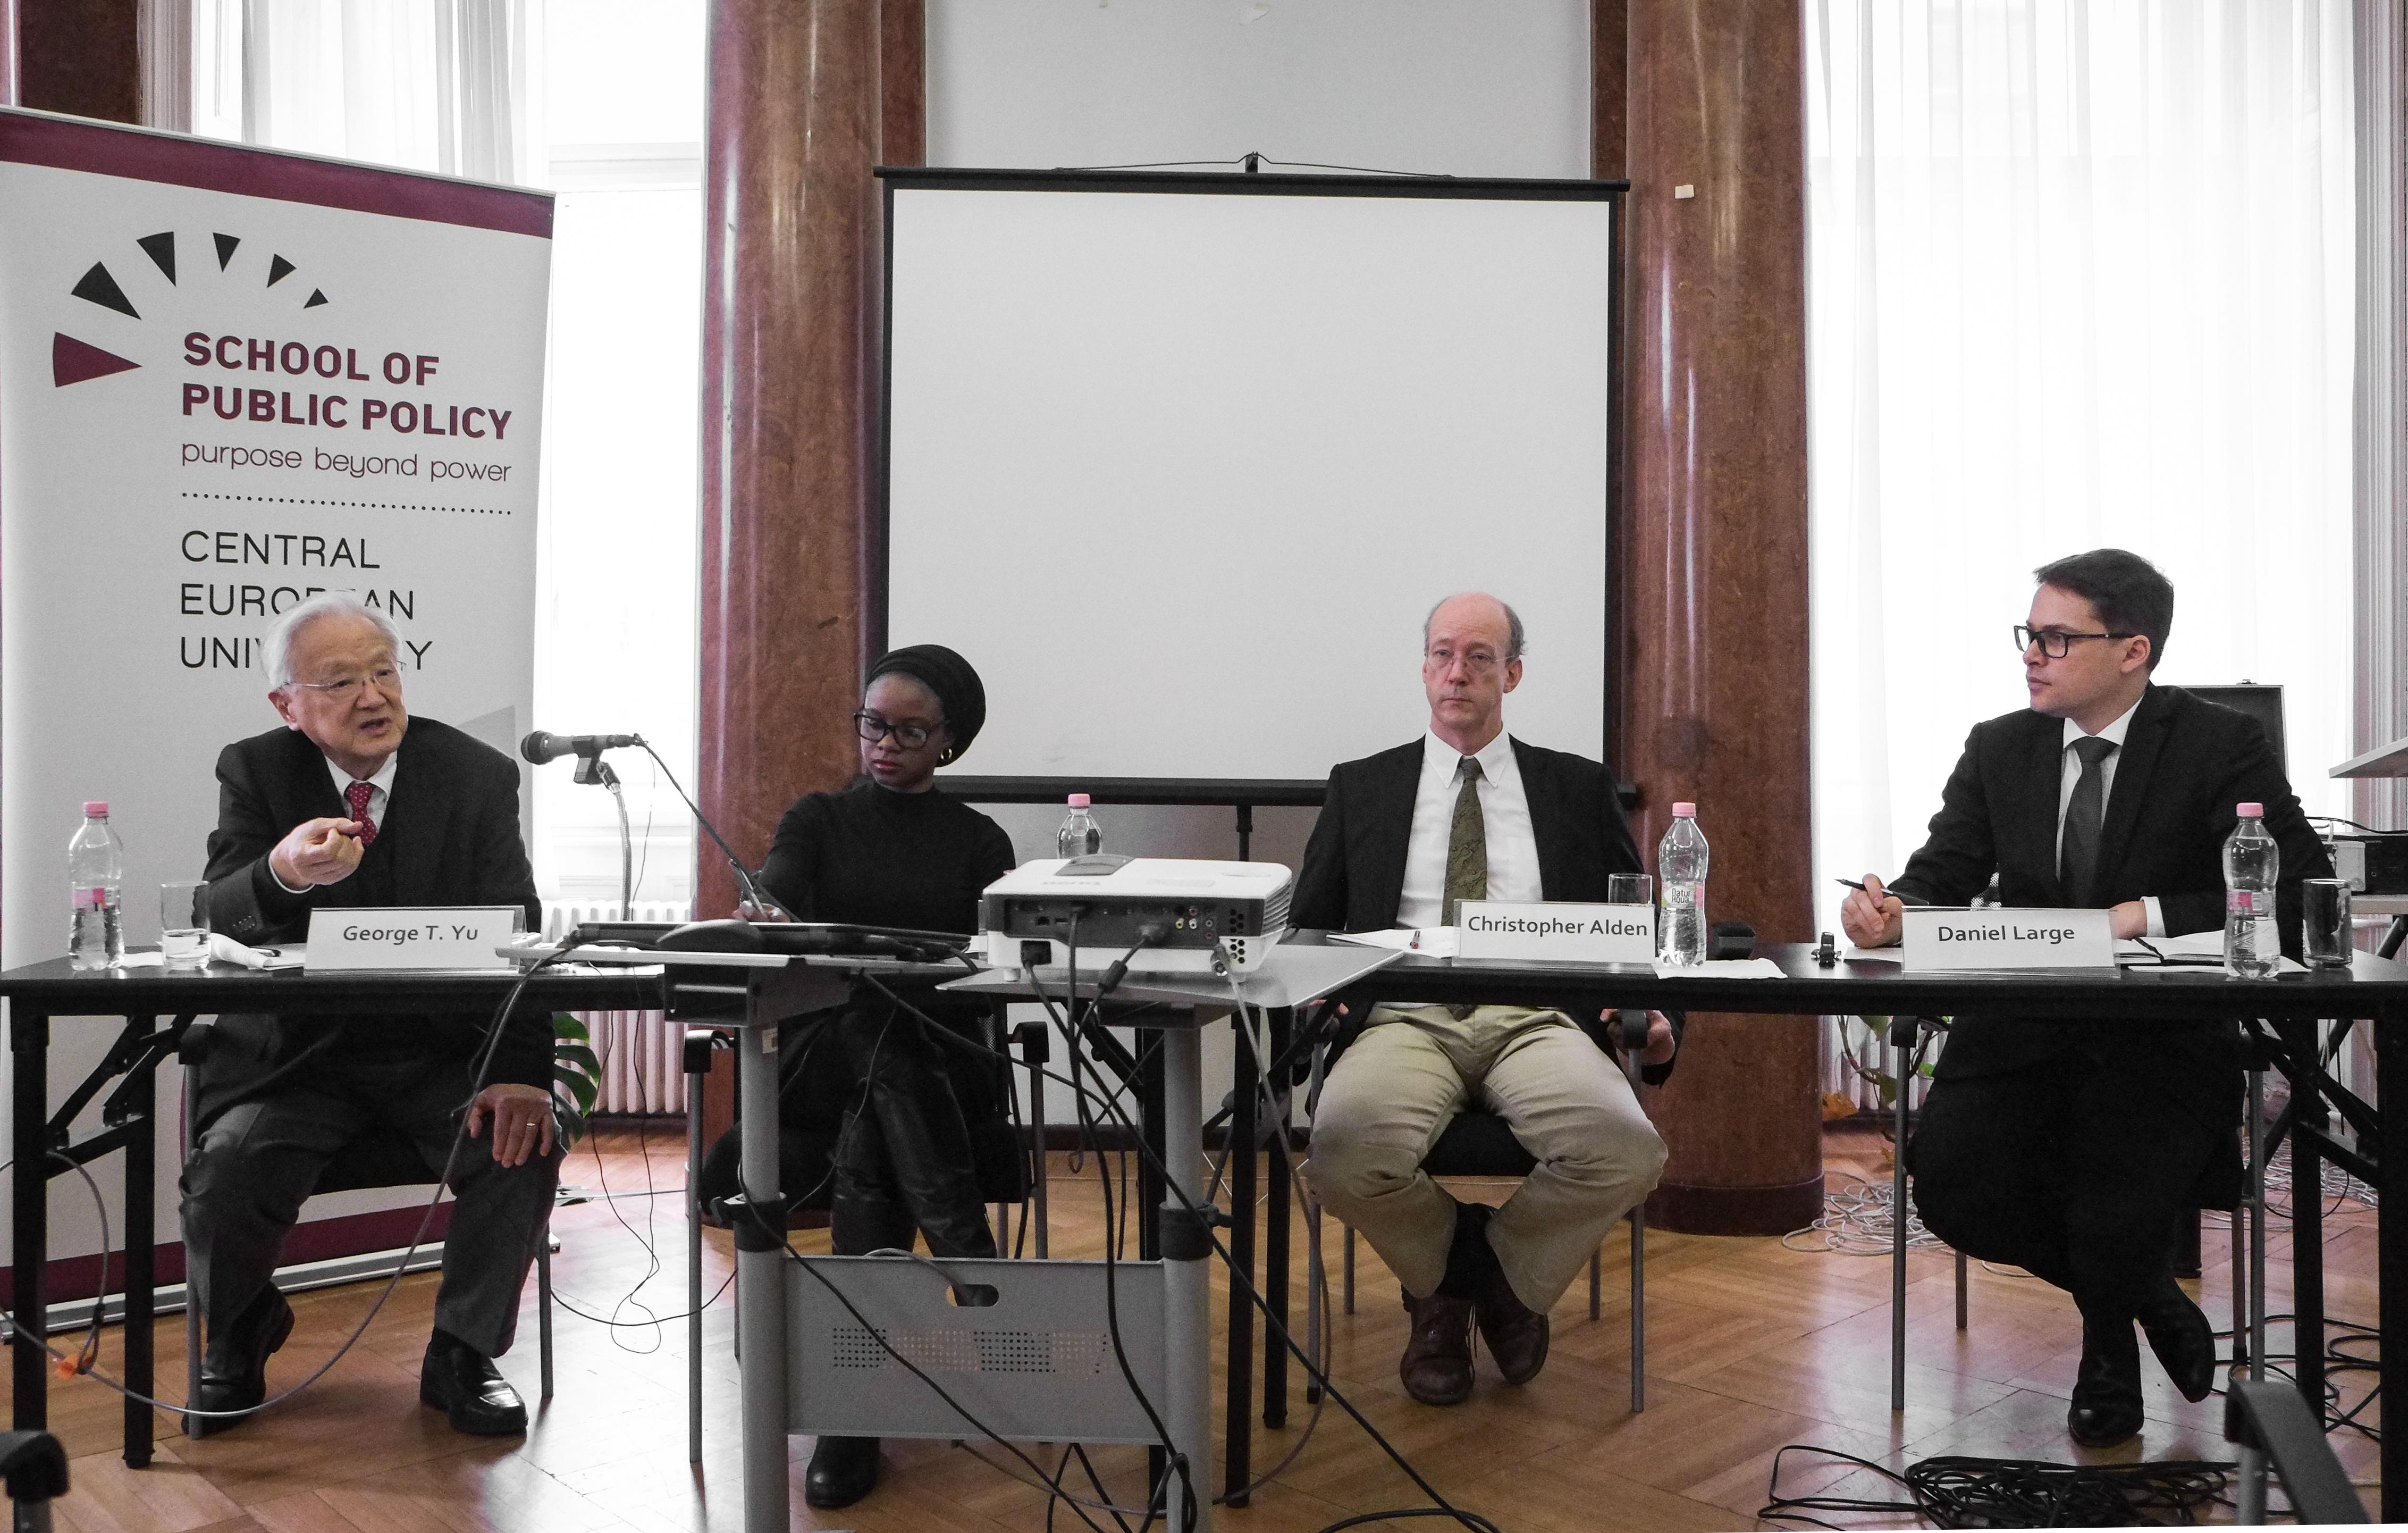 Panelists discuss the past, present, and future of China-Africa relations at the School of Public Policy at CEU. Photo: SPP/Stefan Roch